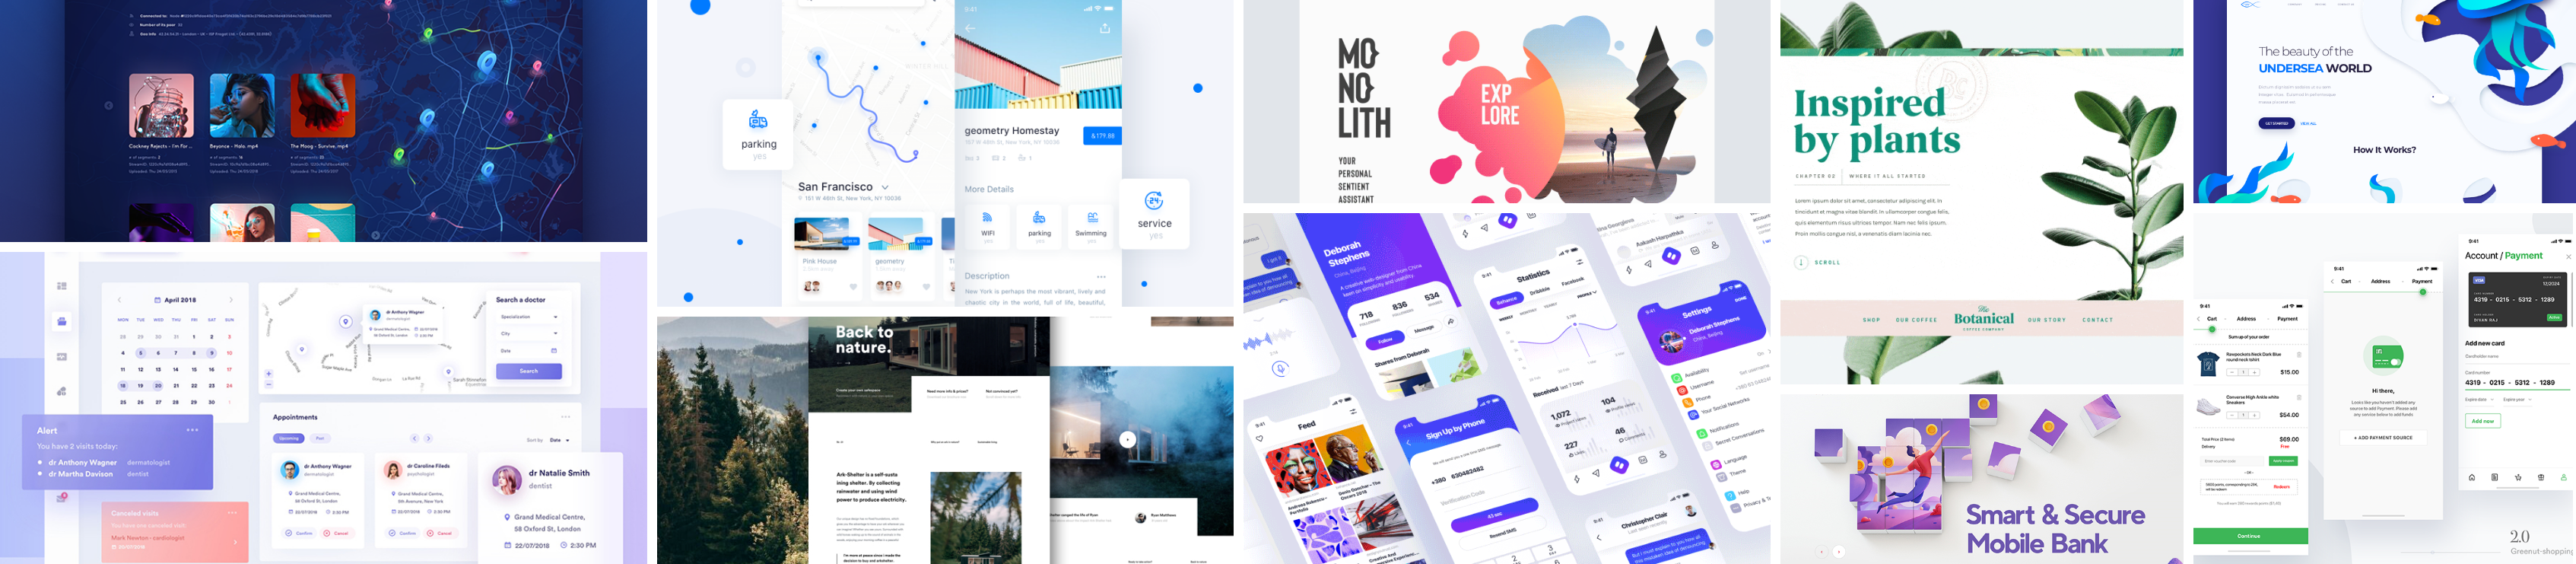 UI/UX Interaction Design – Week 9